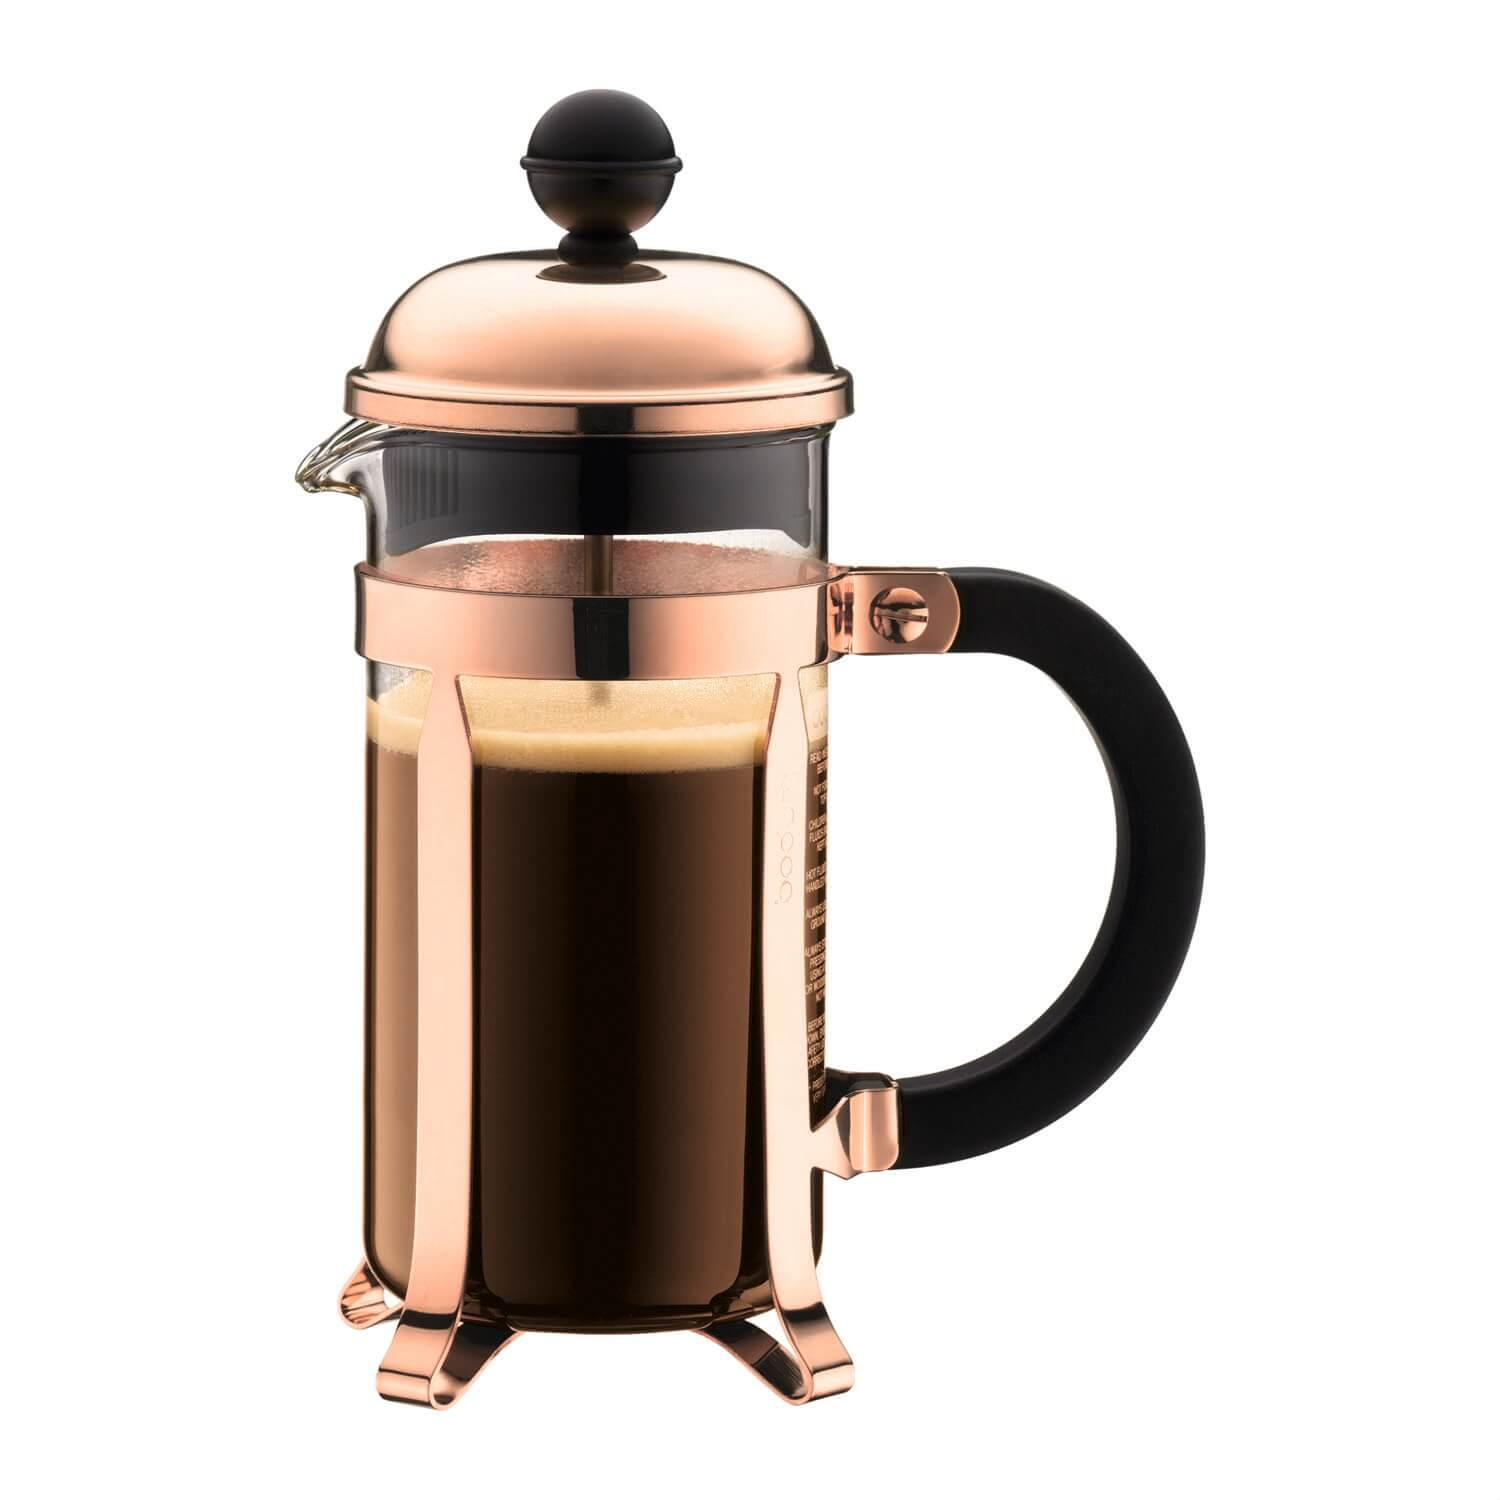 Image of Bodum Chambord 3-cup Coffeemaker, Copper